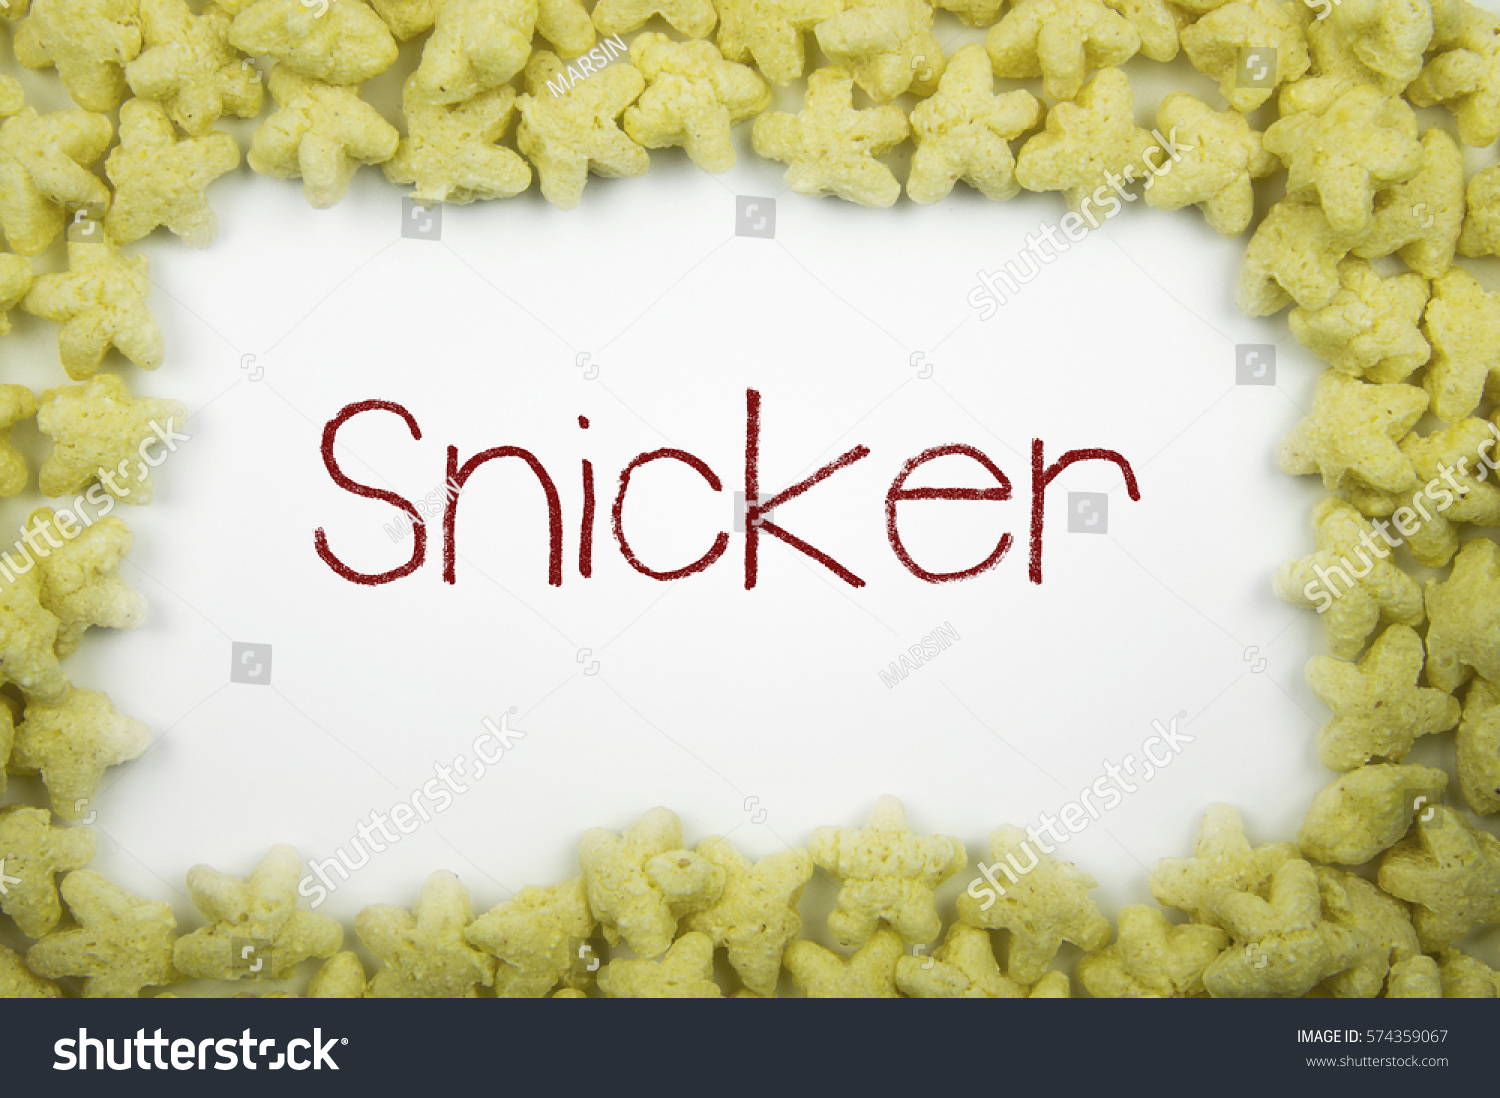 Snicker Concept Write Text Frame Glazed Stock Photo 574359067 ...